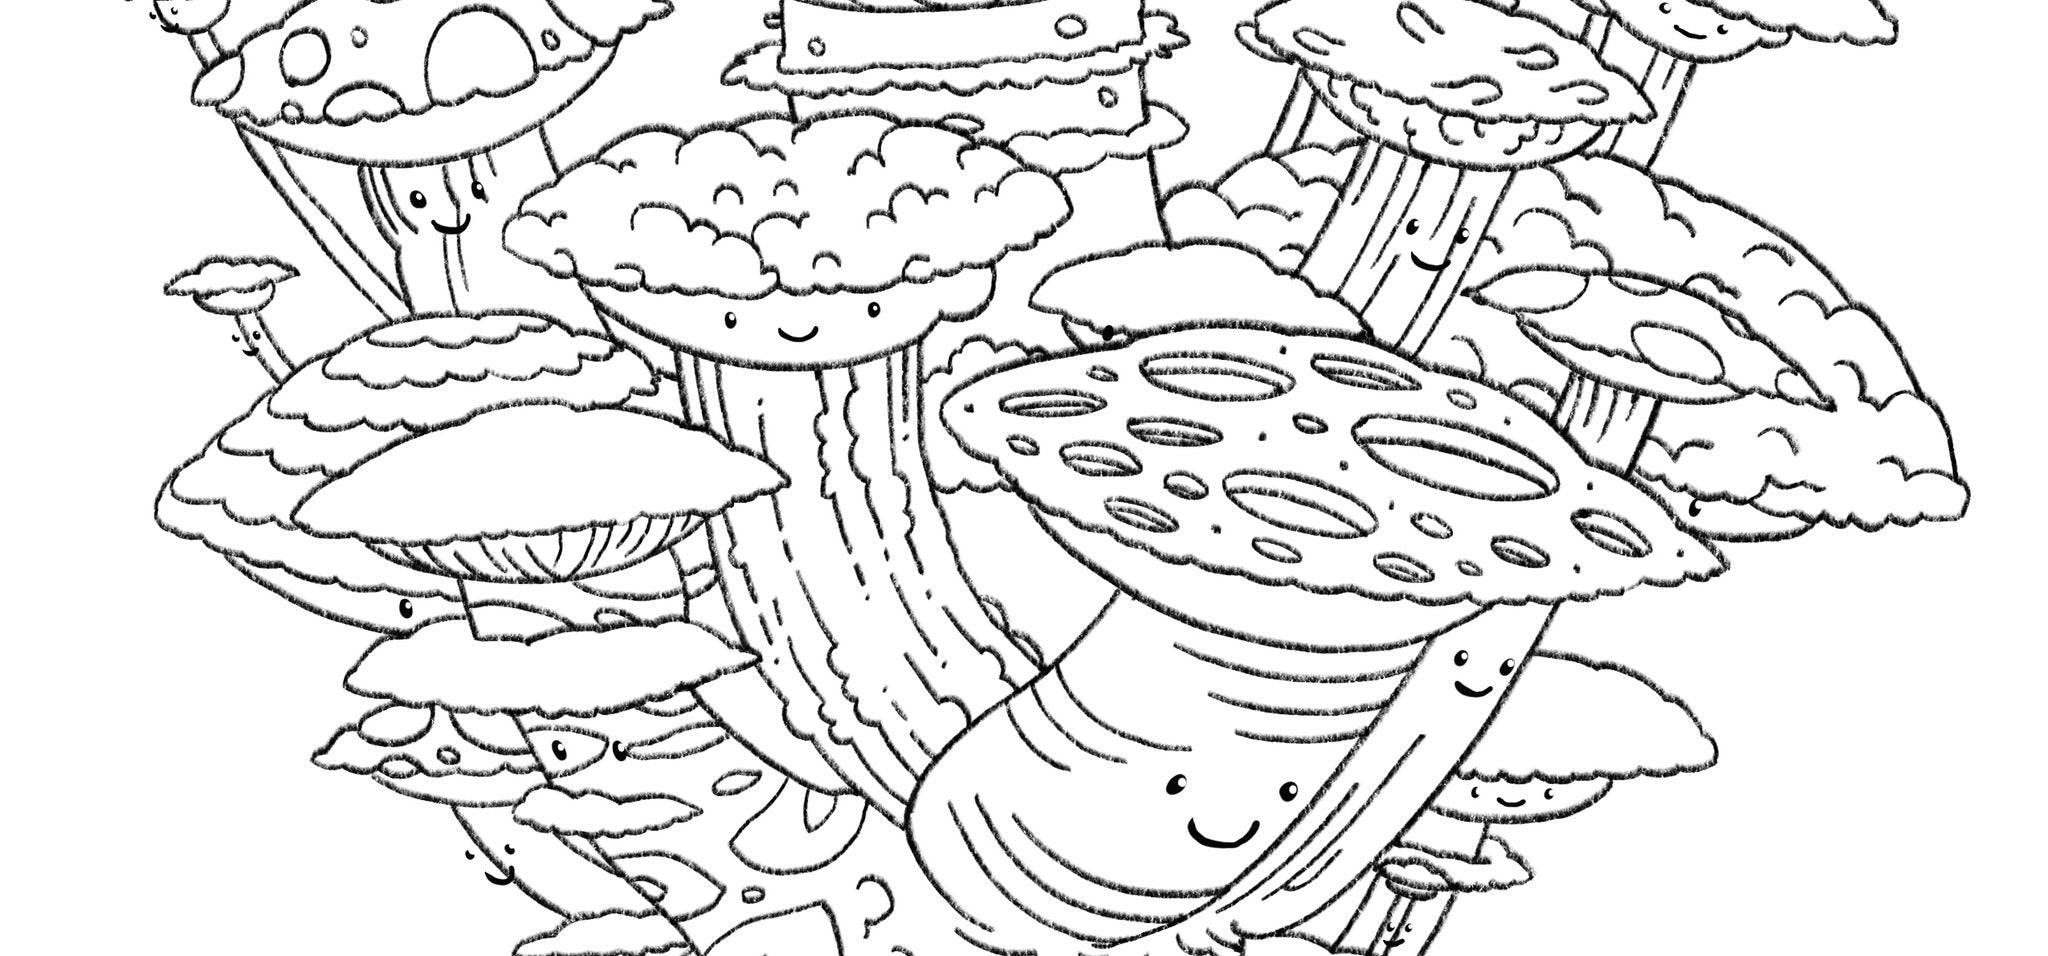 Space Shrooms Coloring Page | Saturday Morning Cartoons